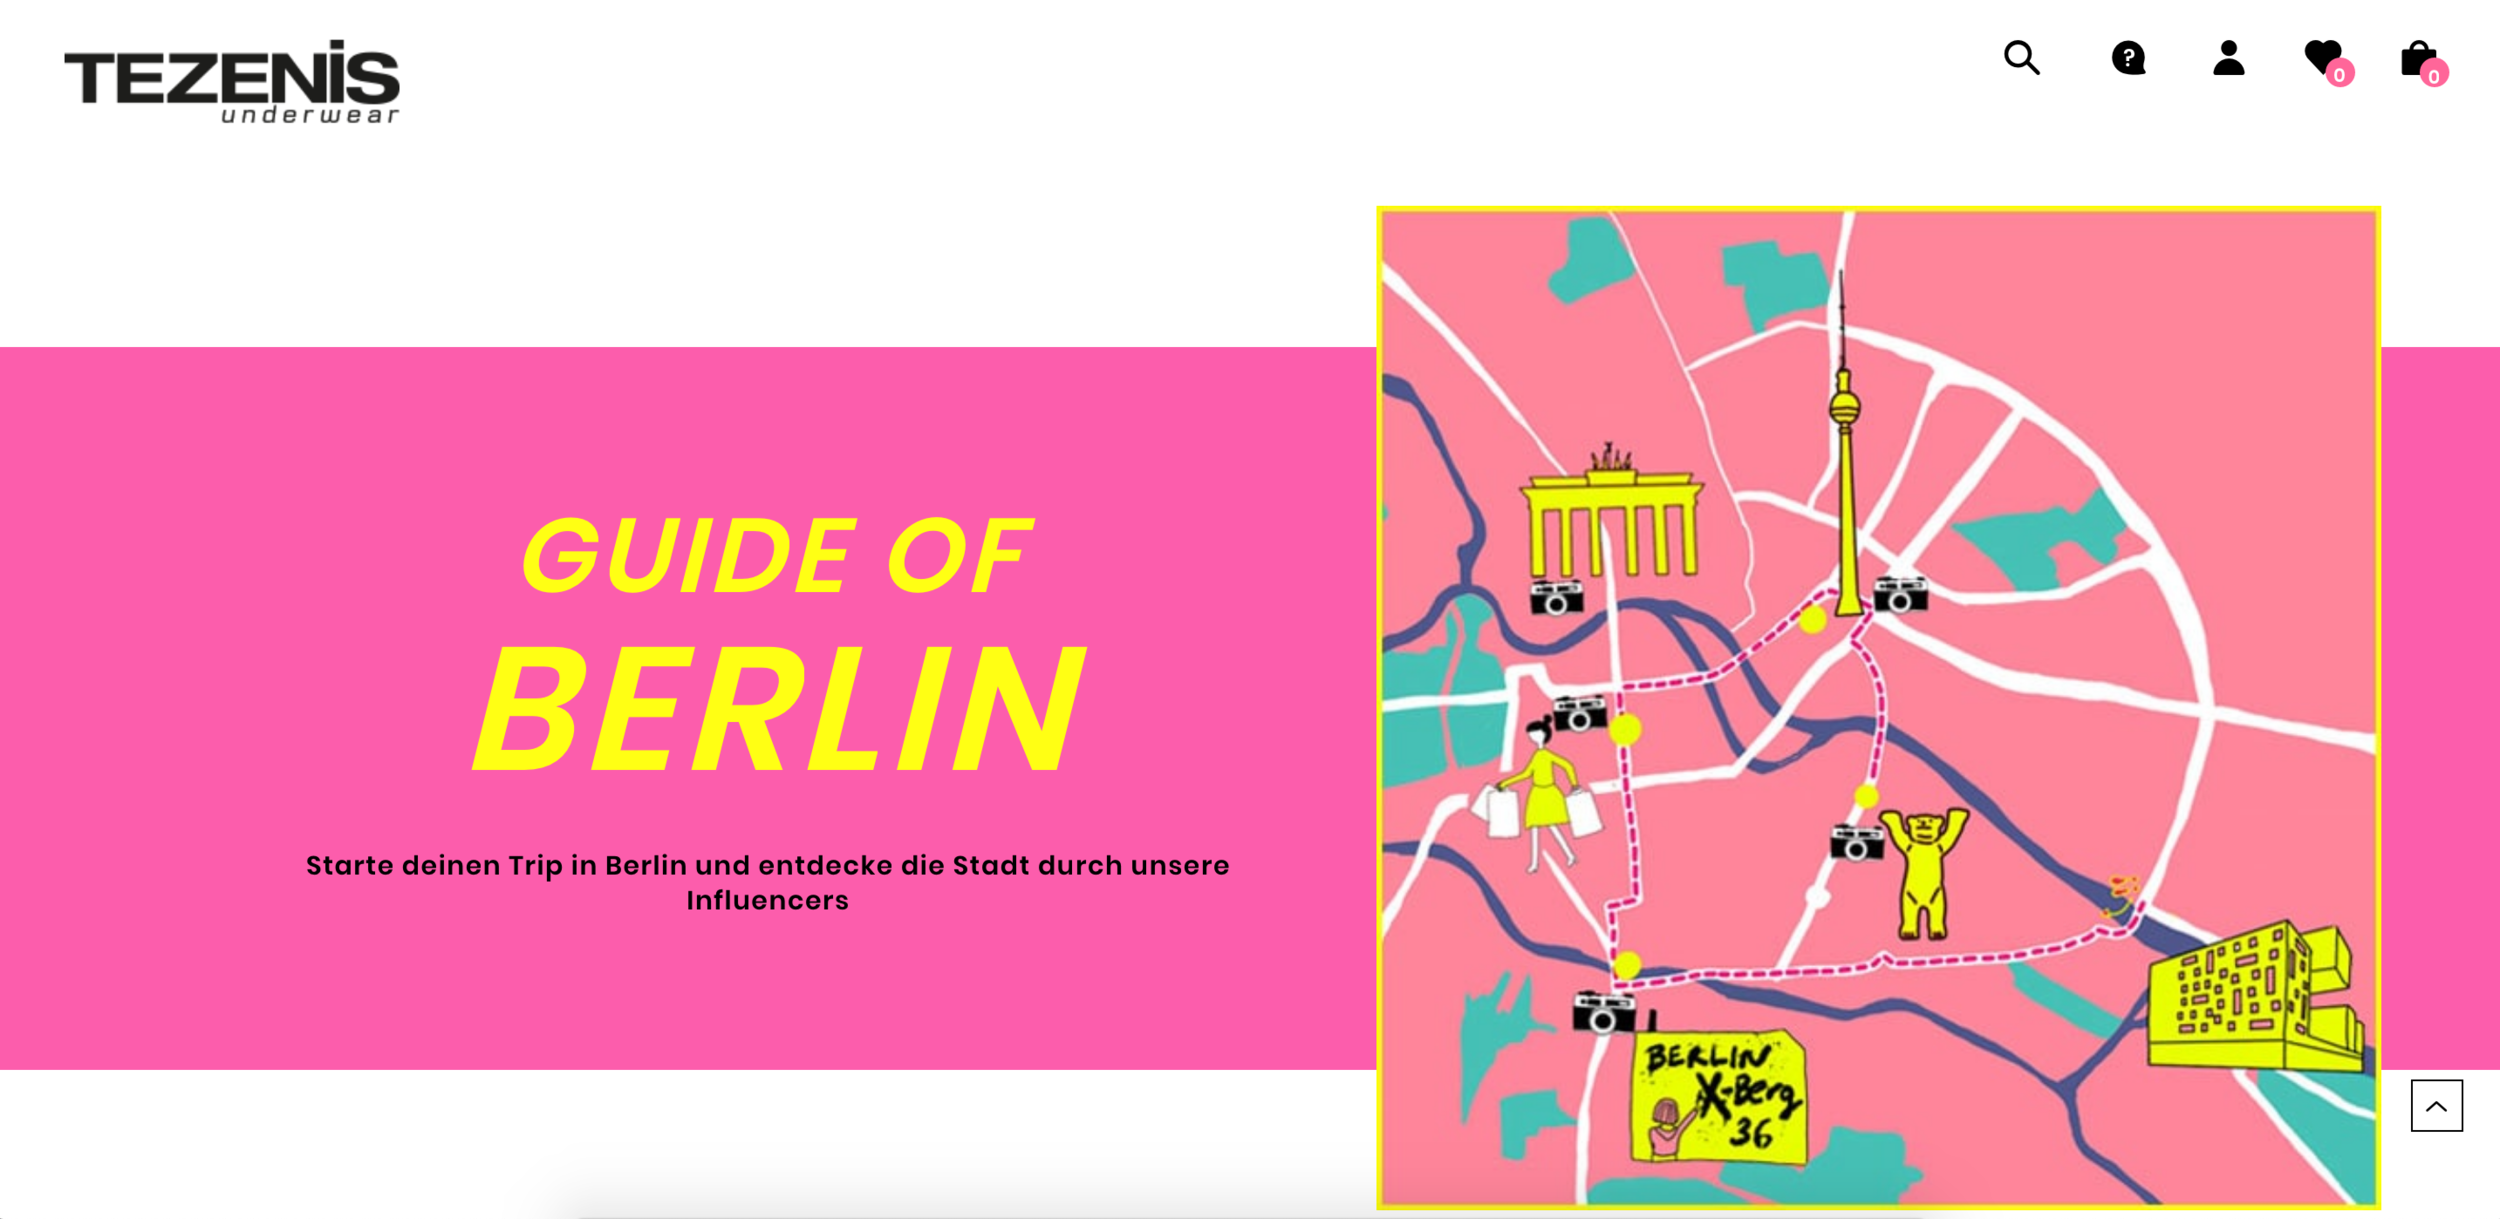 Tezenis (Calzedonia) Advertisement campaign  with my illustrated map